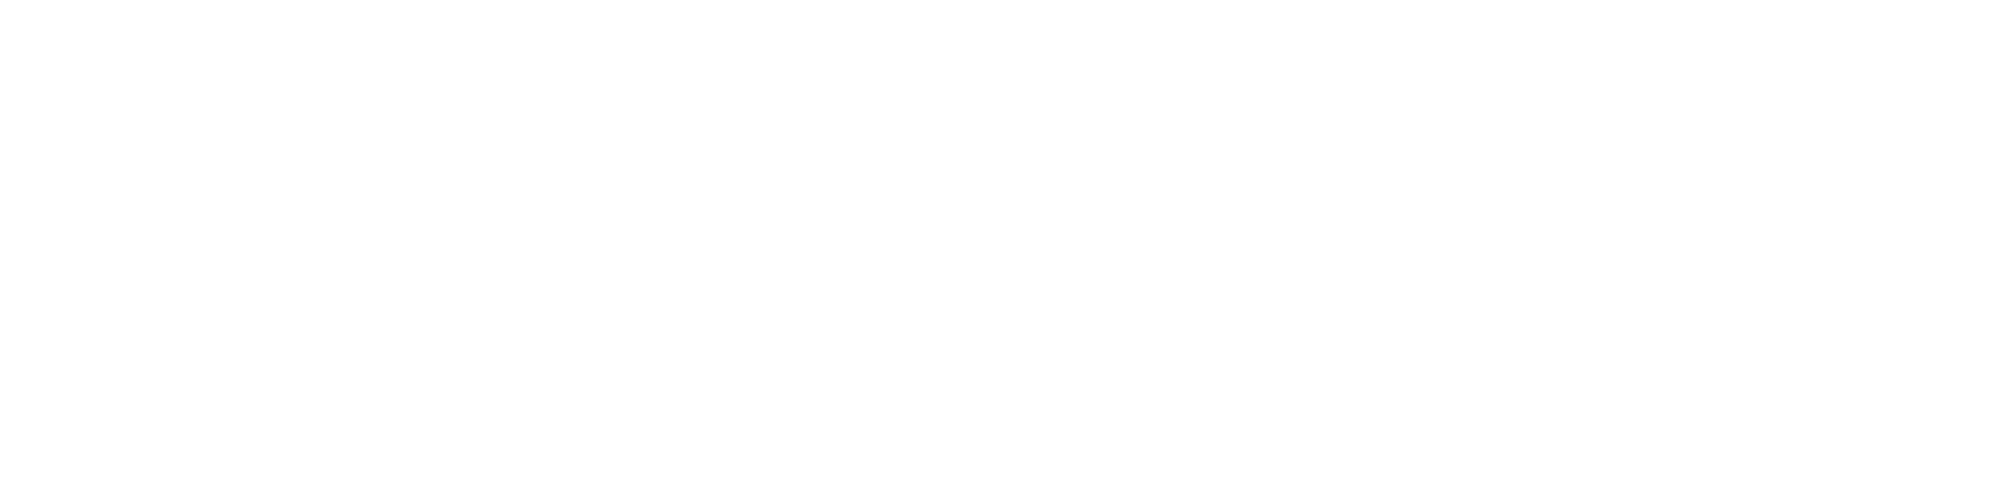 Phillip Island Winery logo white.png